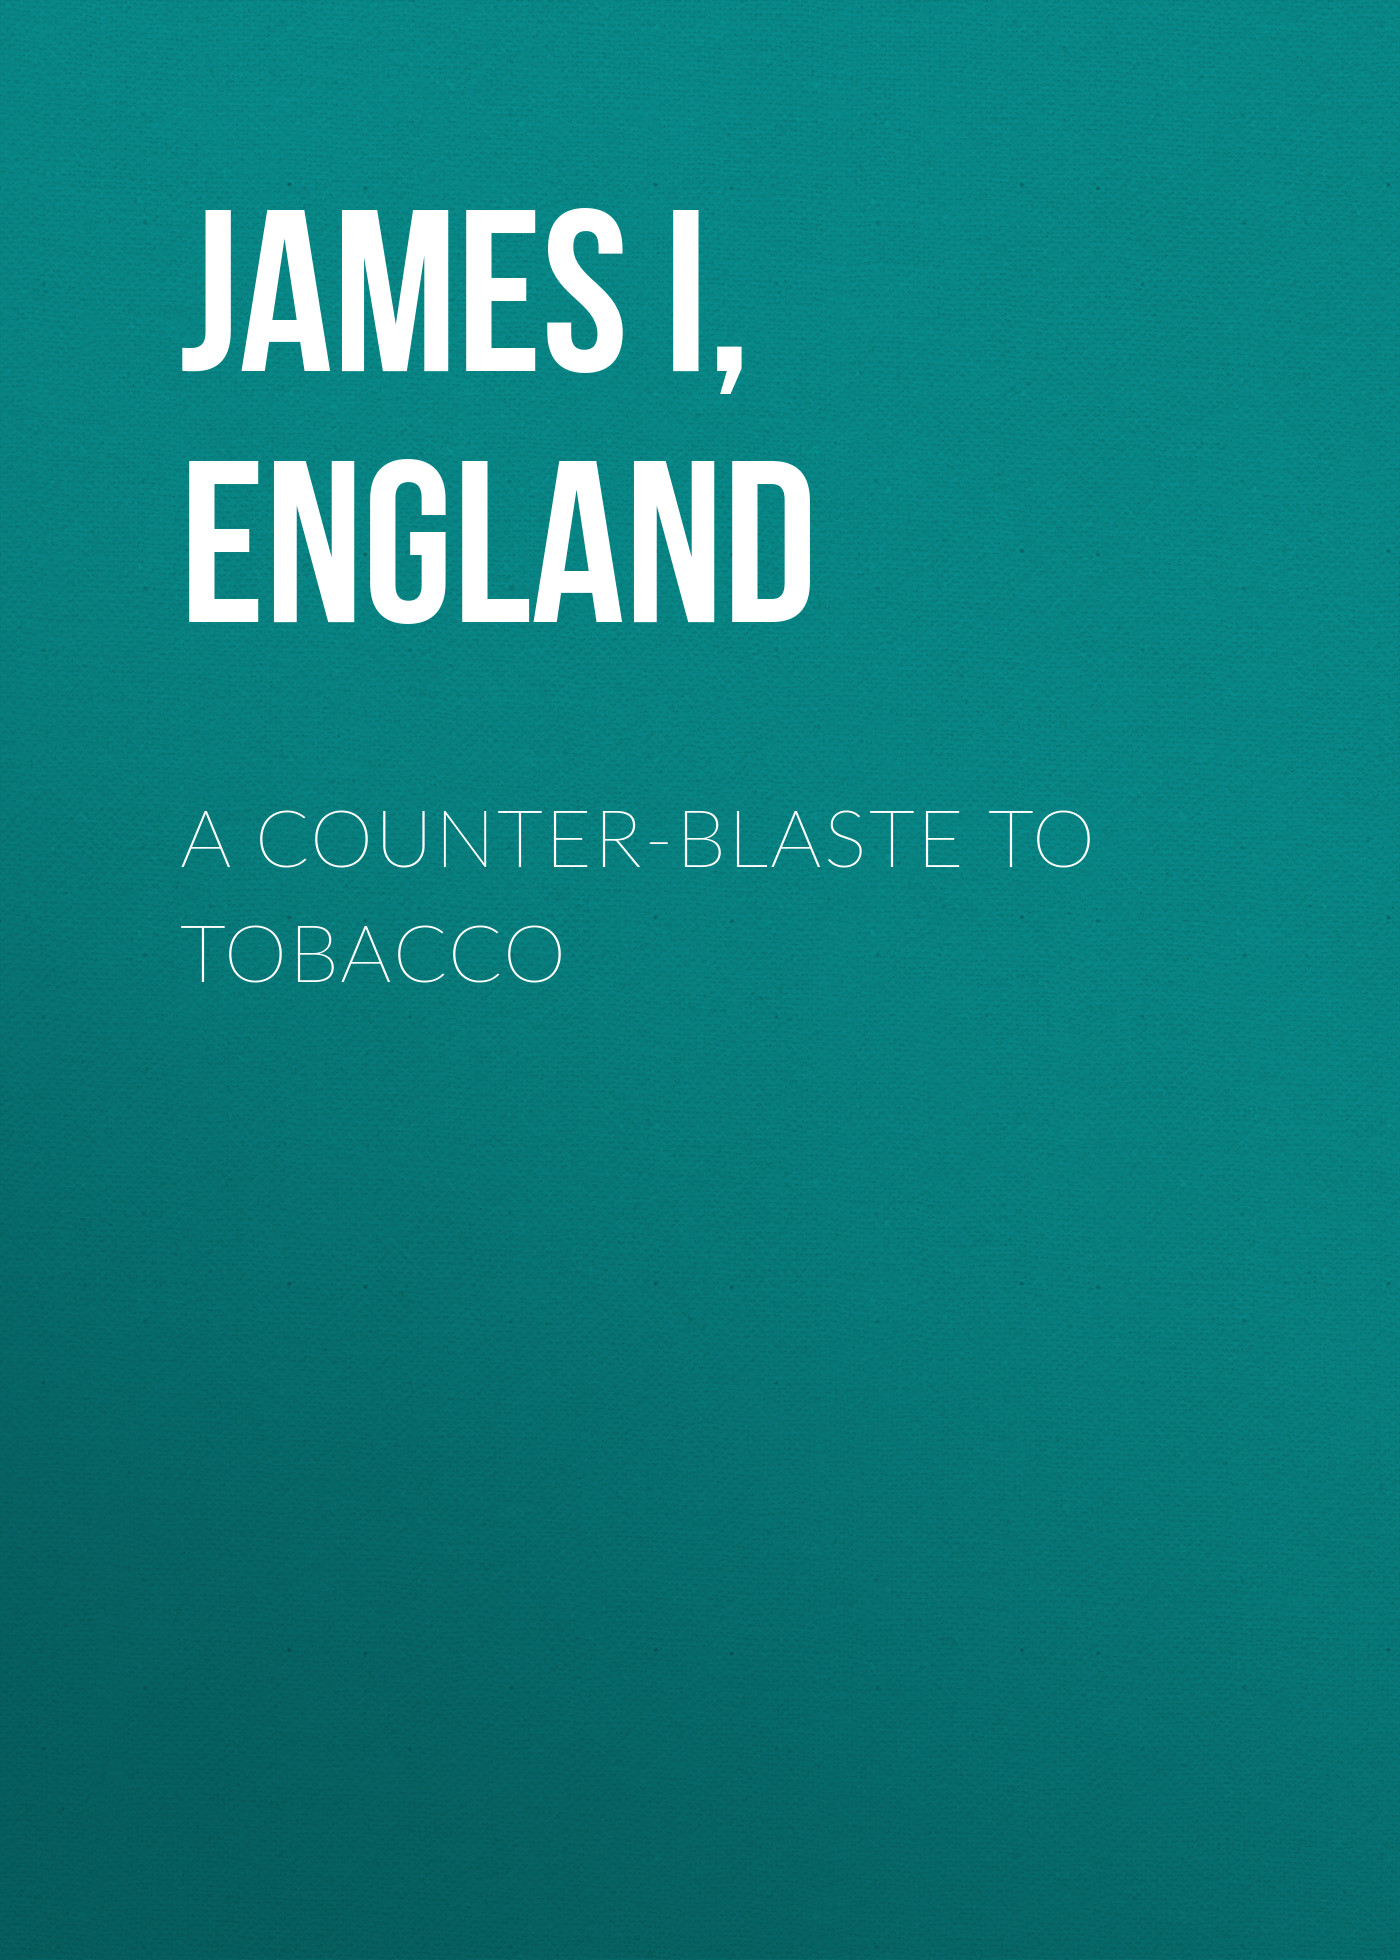 James I, King of England A Counter-Blaste to Tobacco king james nkum power of sex for singles